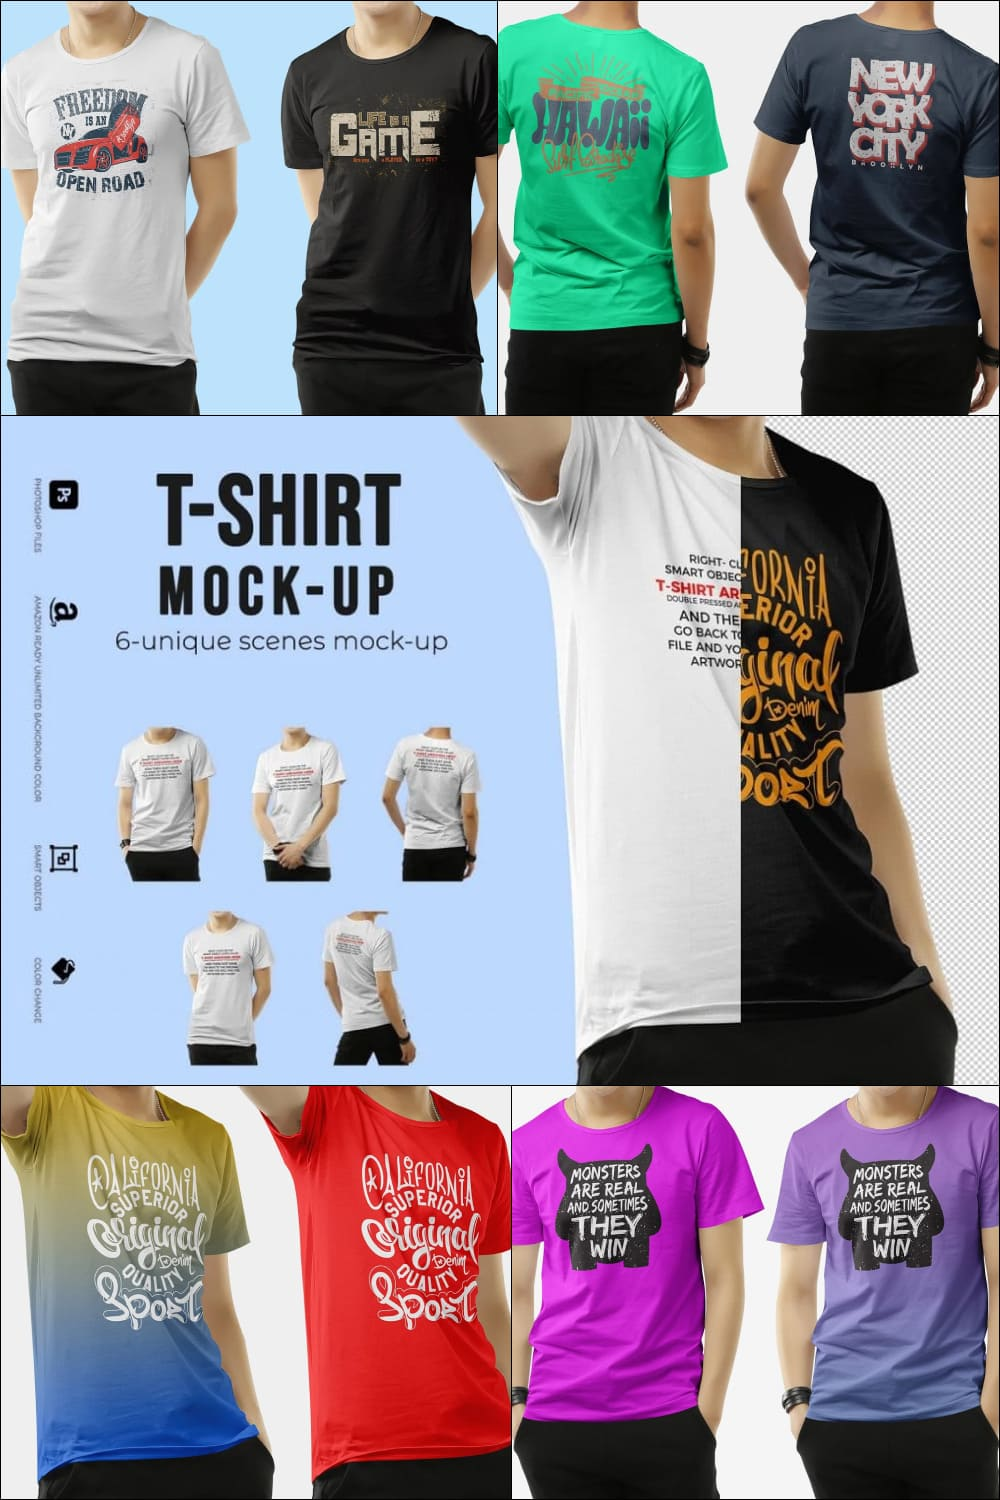 Classic t-shirts with cute illustrations.